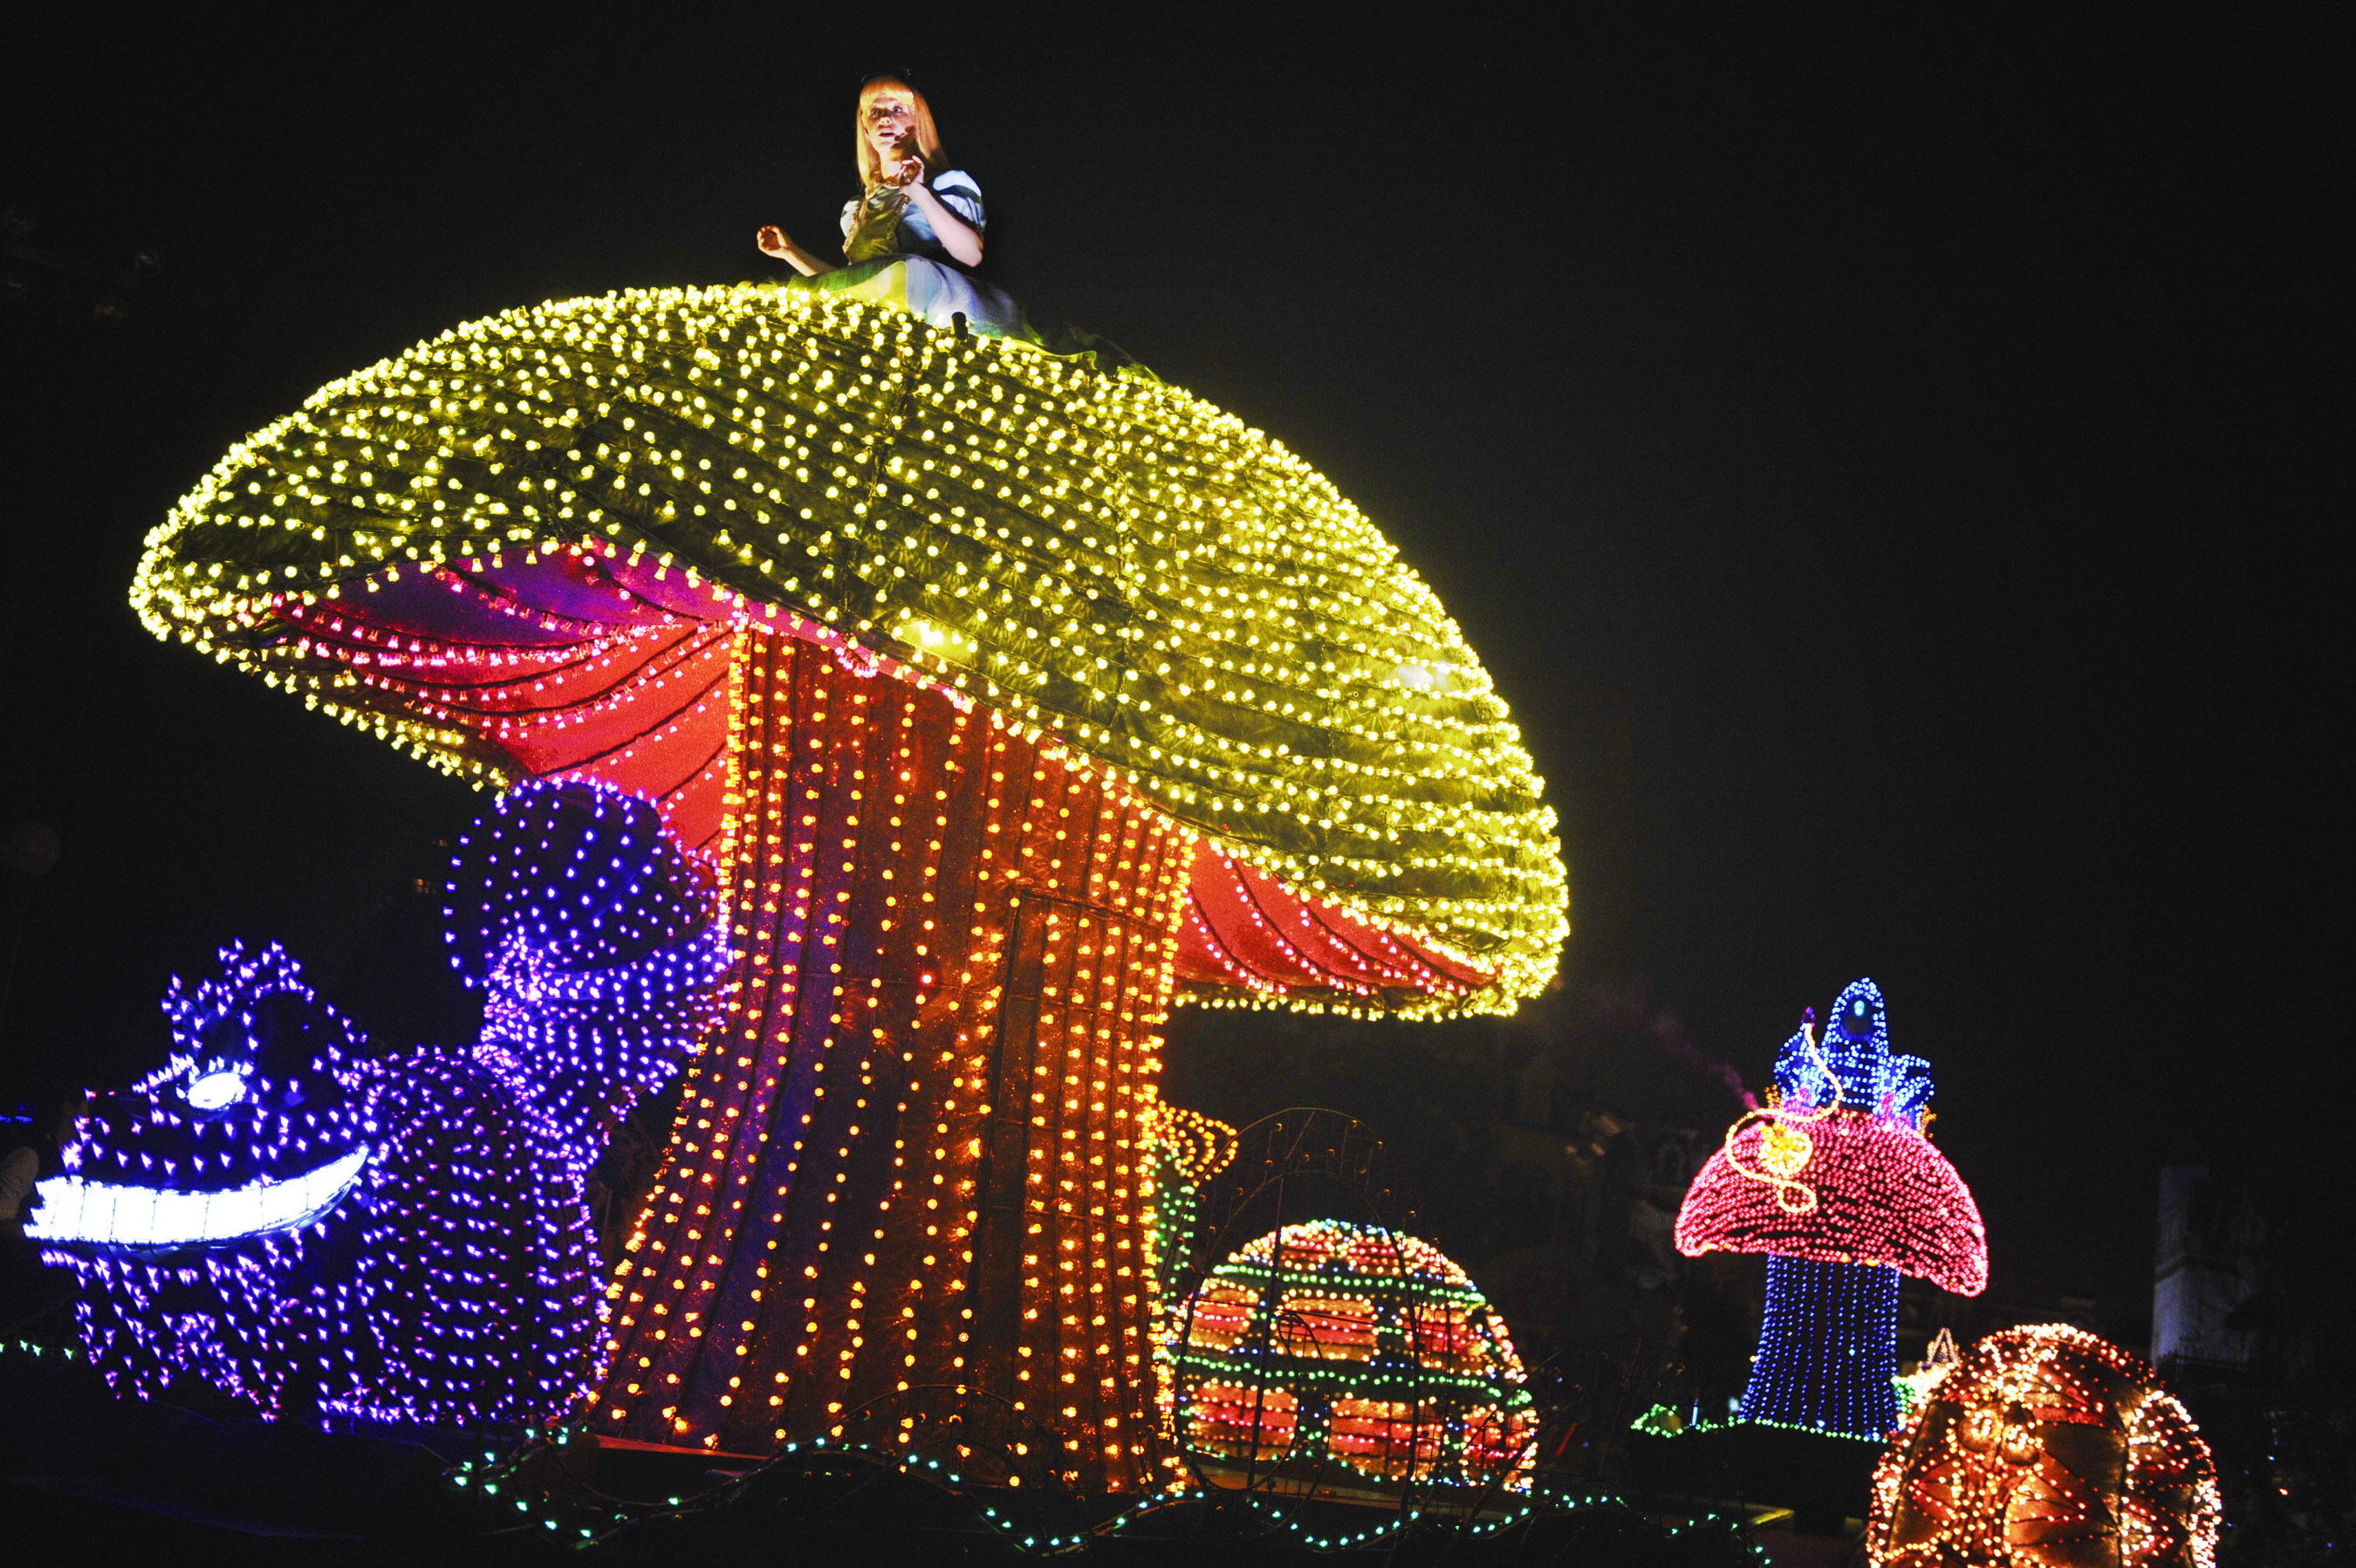 Alice Float Main Street Electrical parade